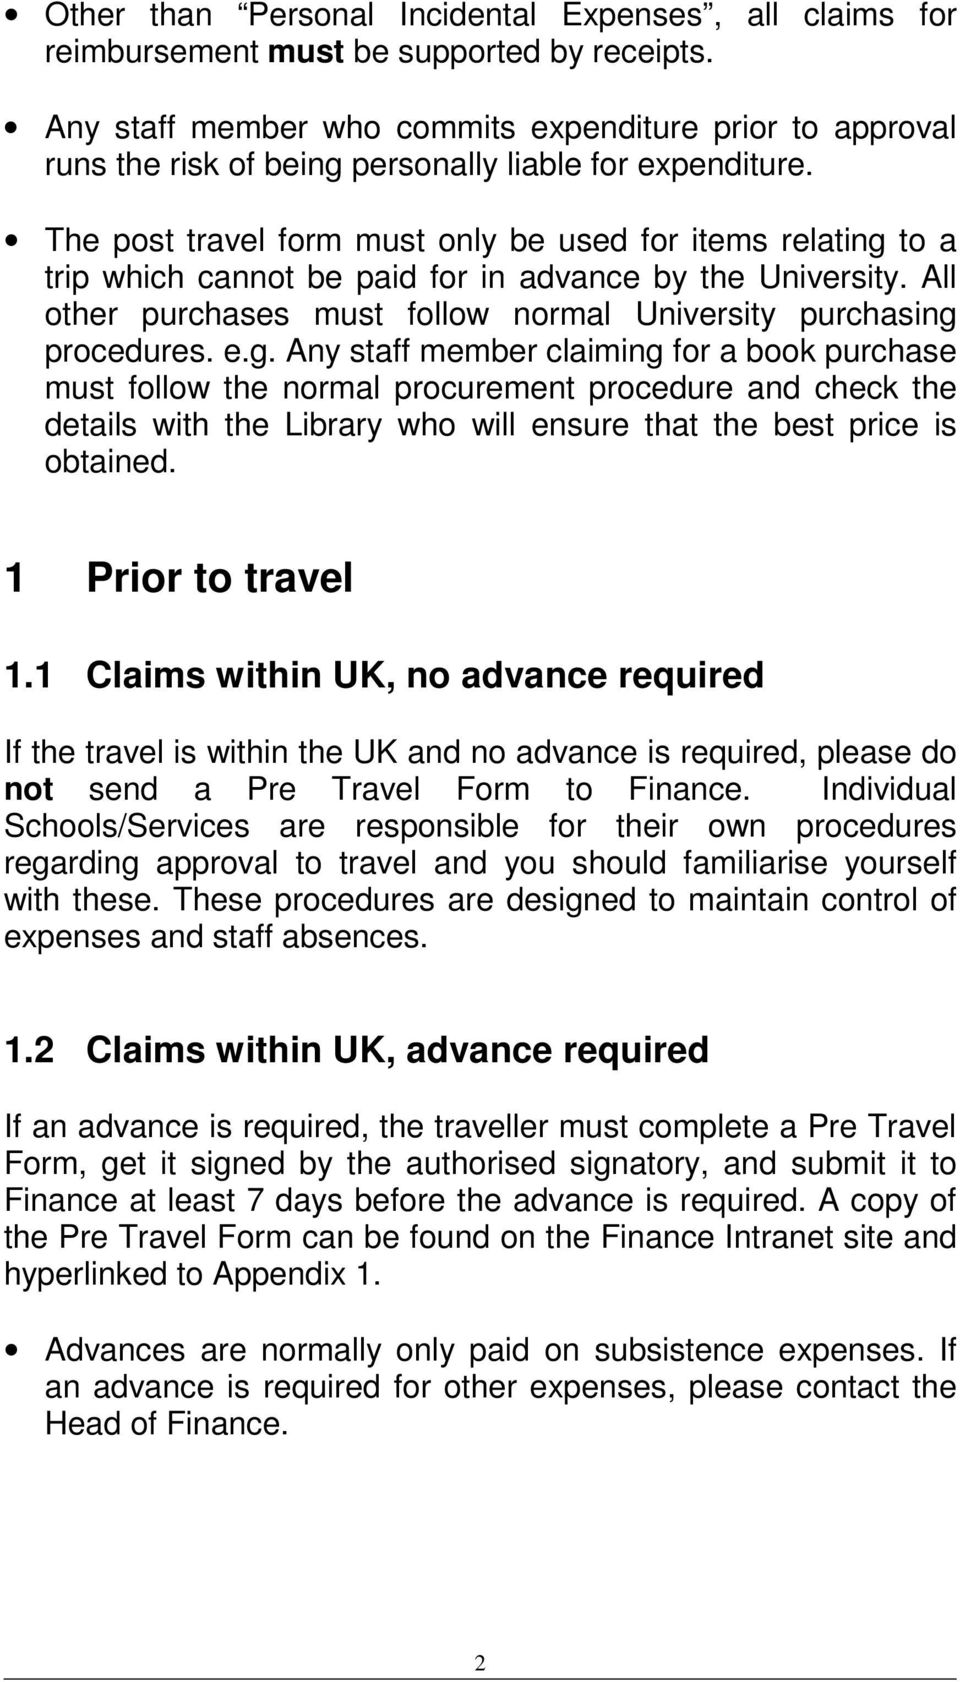 The post travel form must only be used for items relating